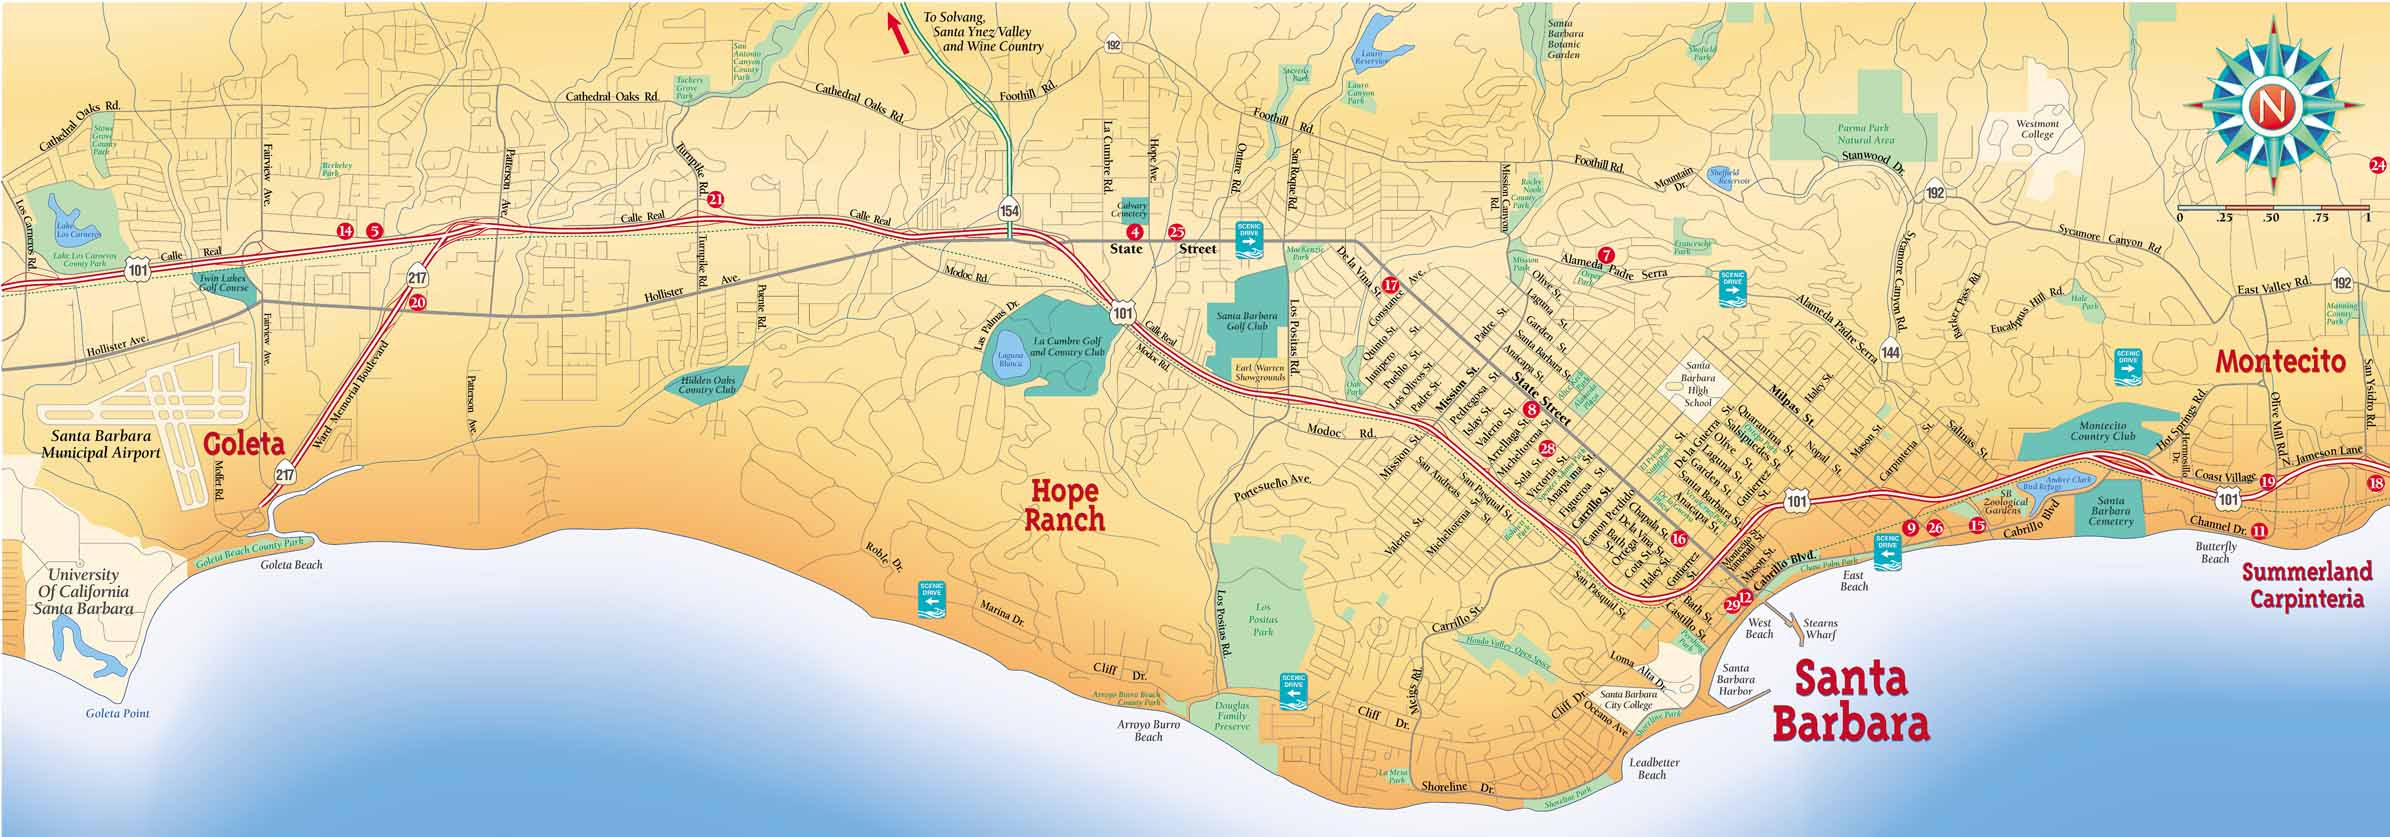 Map Of Santa Barbara EDEK – Santa Barbara Tourist Map